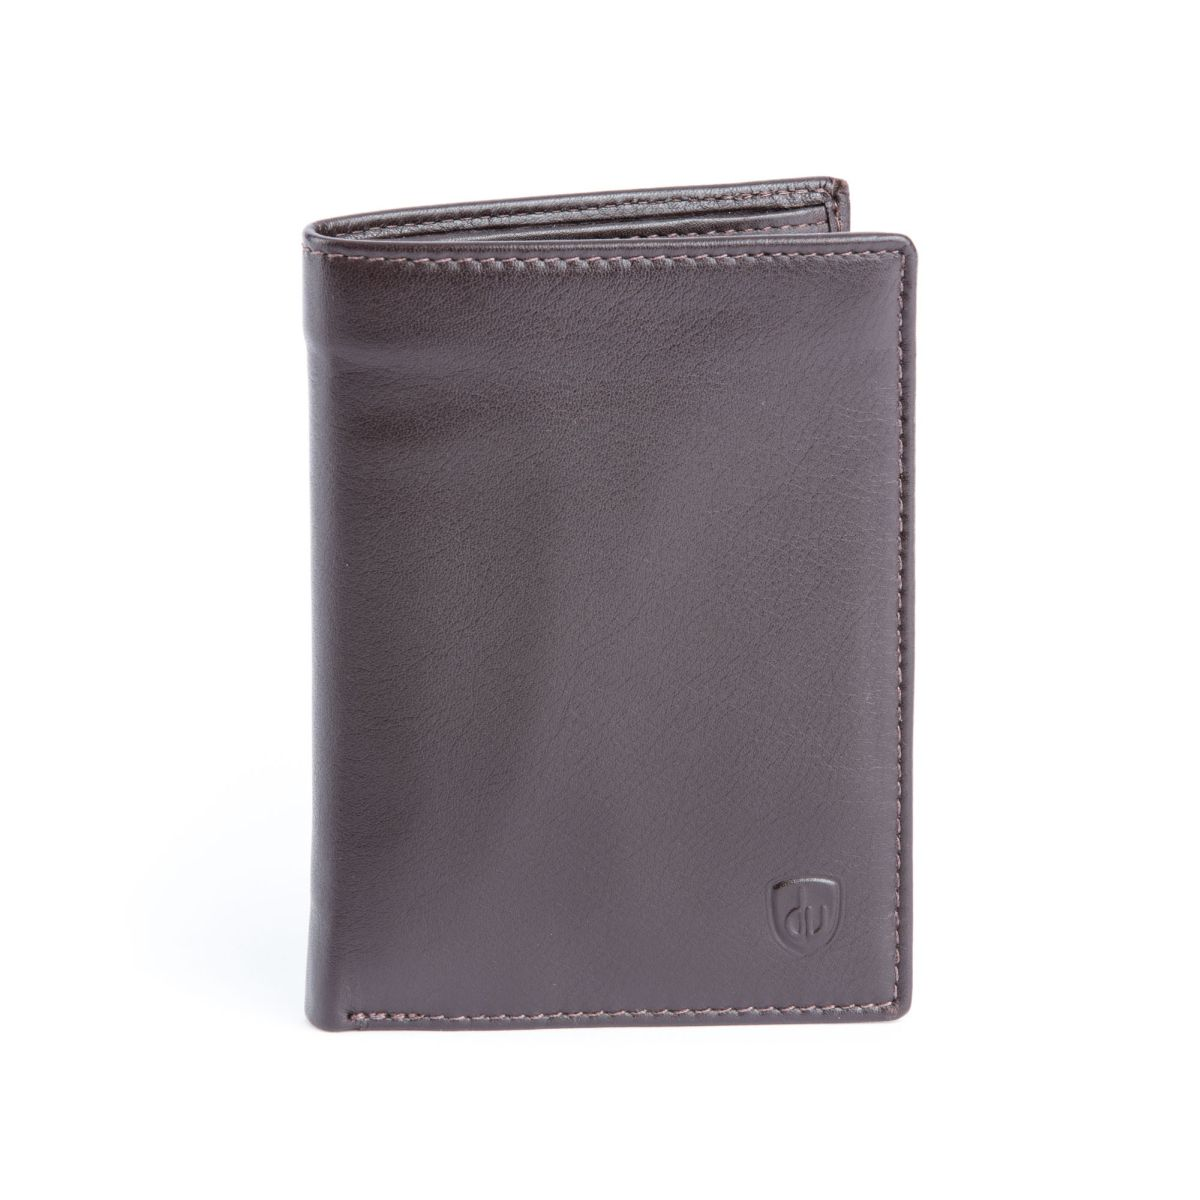 dv Mens leather vertical wallet - Brown